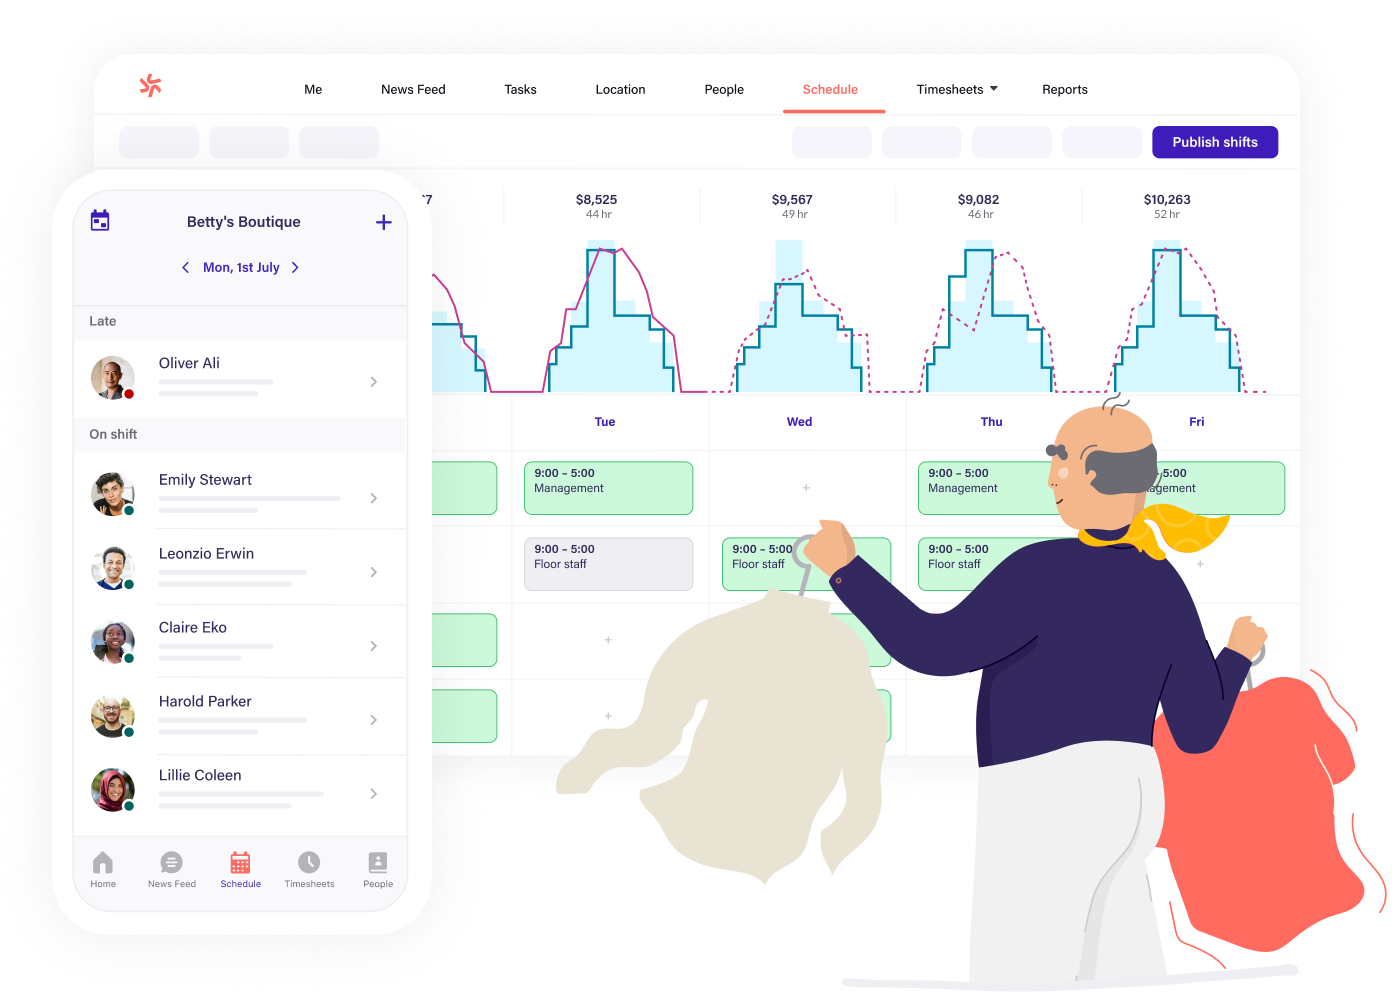 Scheduling software for retail teams